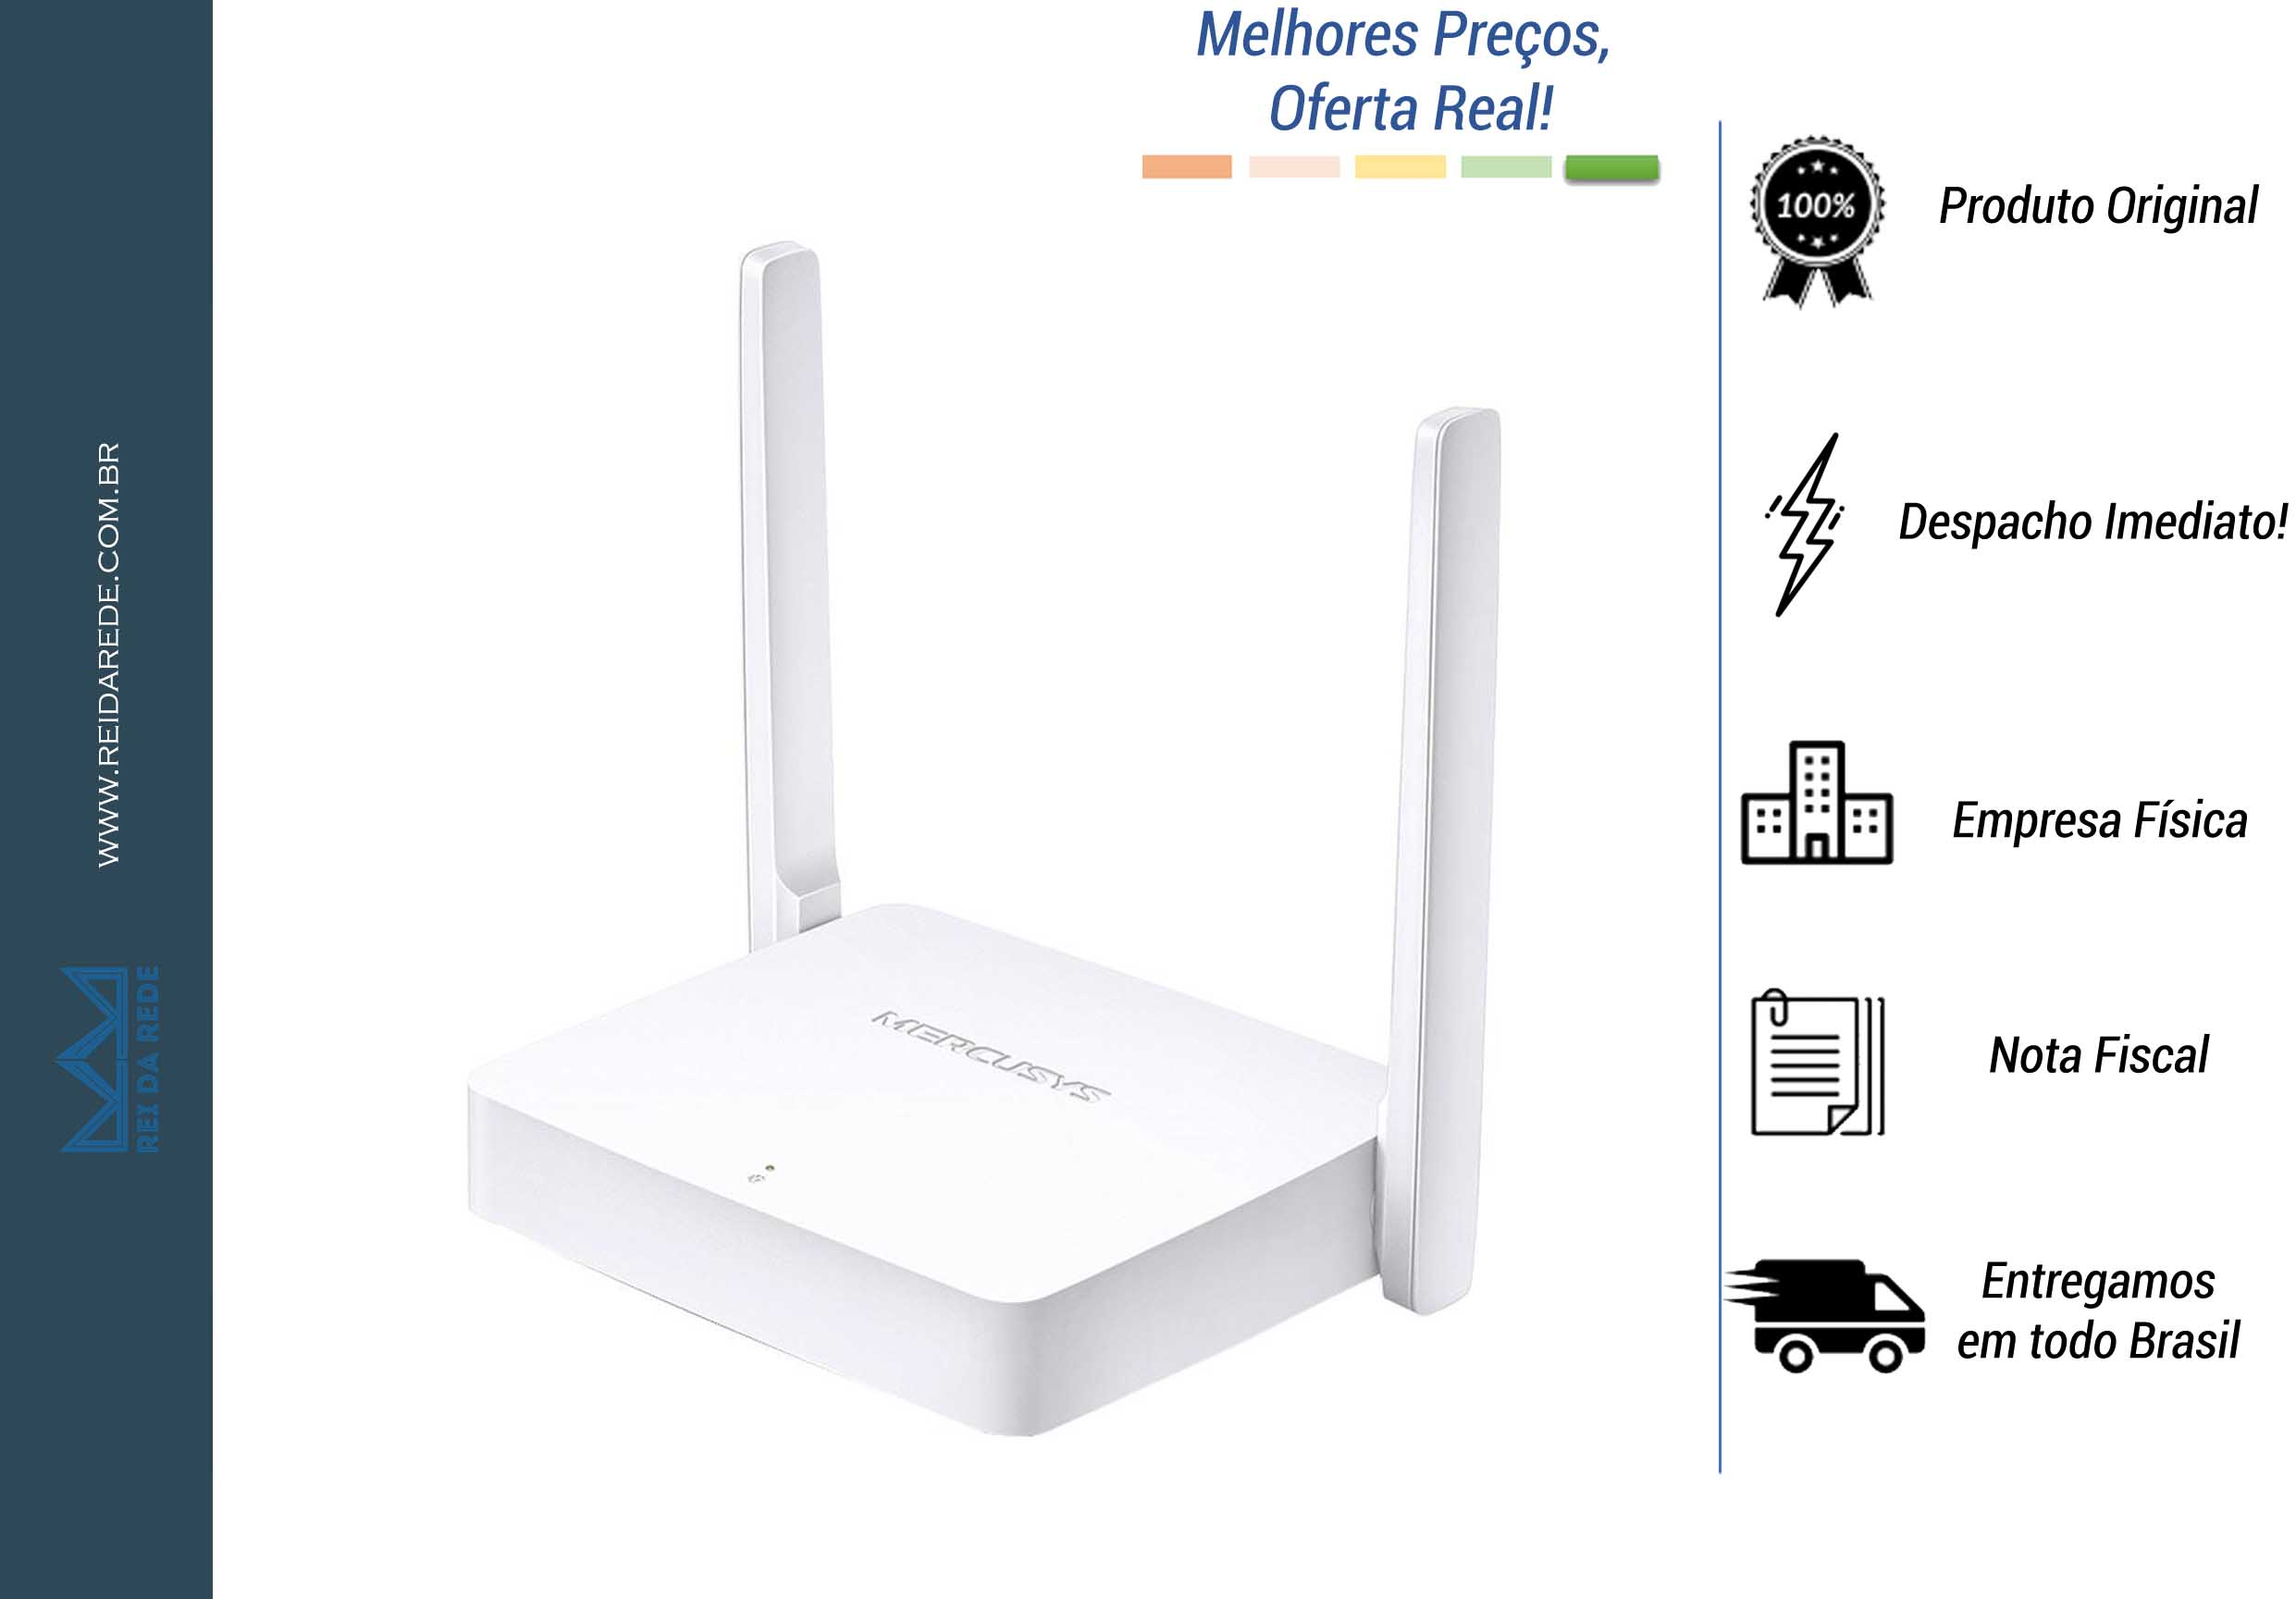 ROTEADOR MERCUSYS MW301R IPV6 300MBPS, 2 ANTENAS FIXAS BY TP-LINK